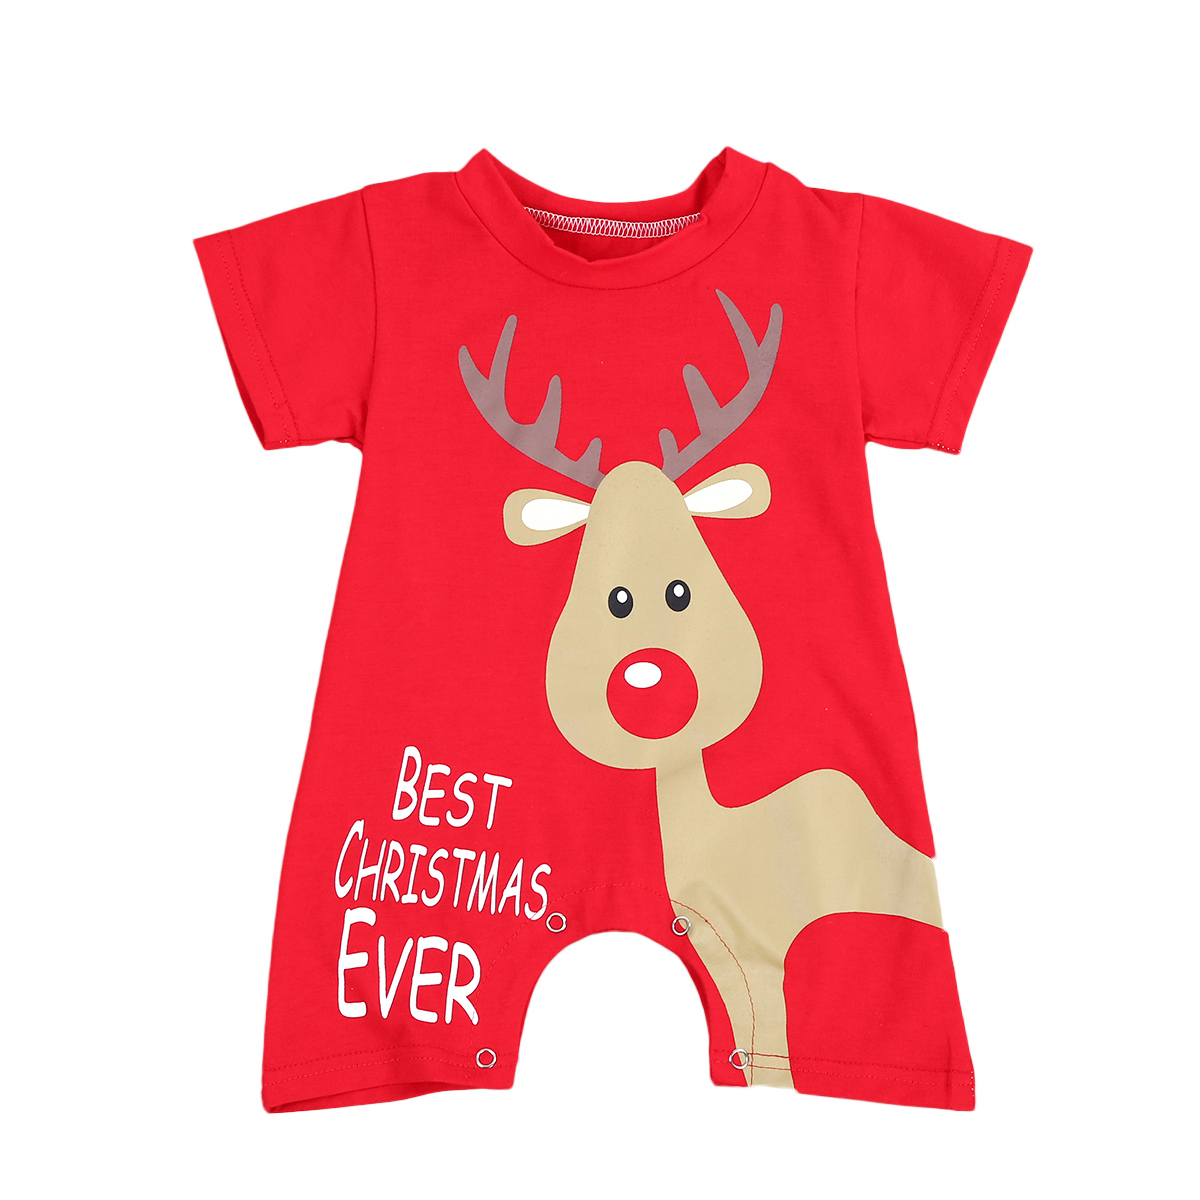 Christmas baby boys girls clothes cartoon deer newborn baby romper jumpsuit short sleeves baby new year costume red for boy girl